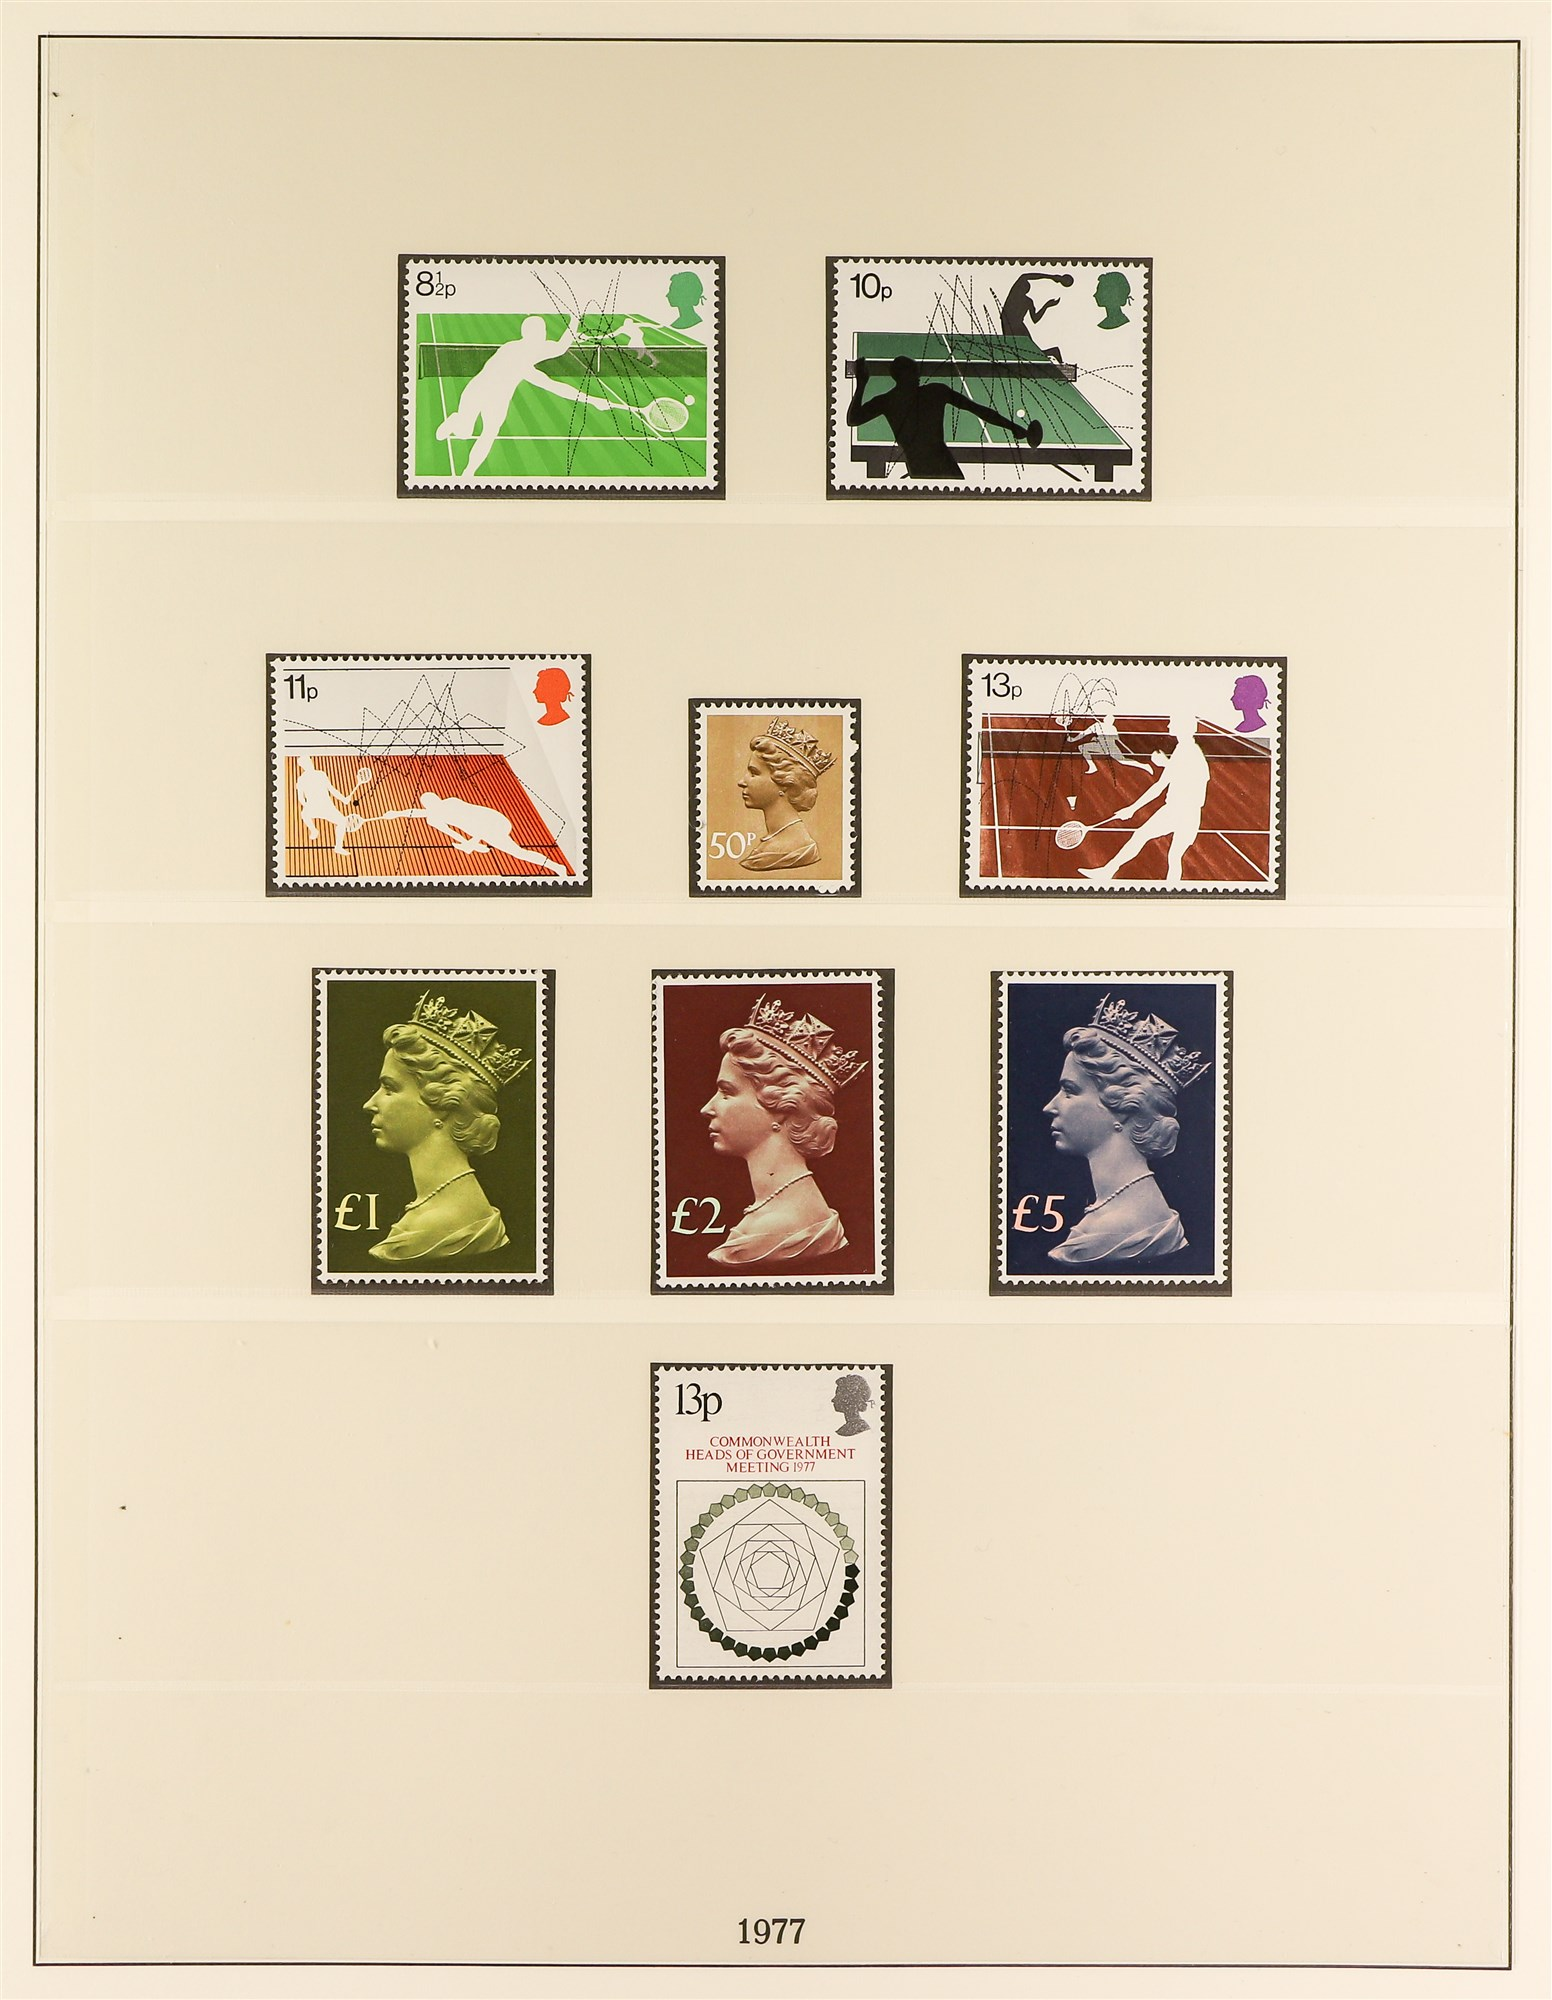 GB.ELIZABETH II 1971-85 never hinged mint run on a set of Lindner pages, incl. some Machins to £5